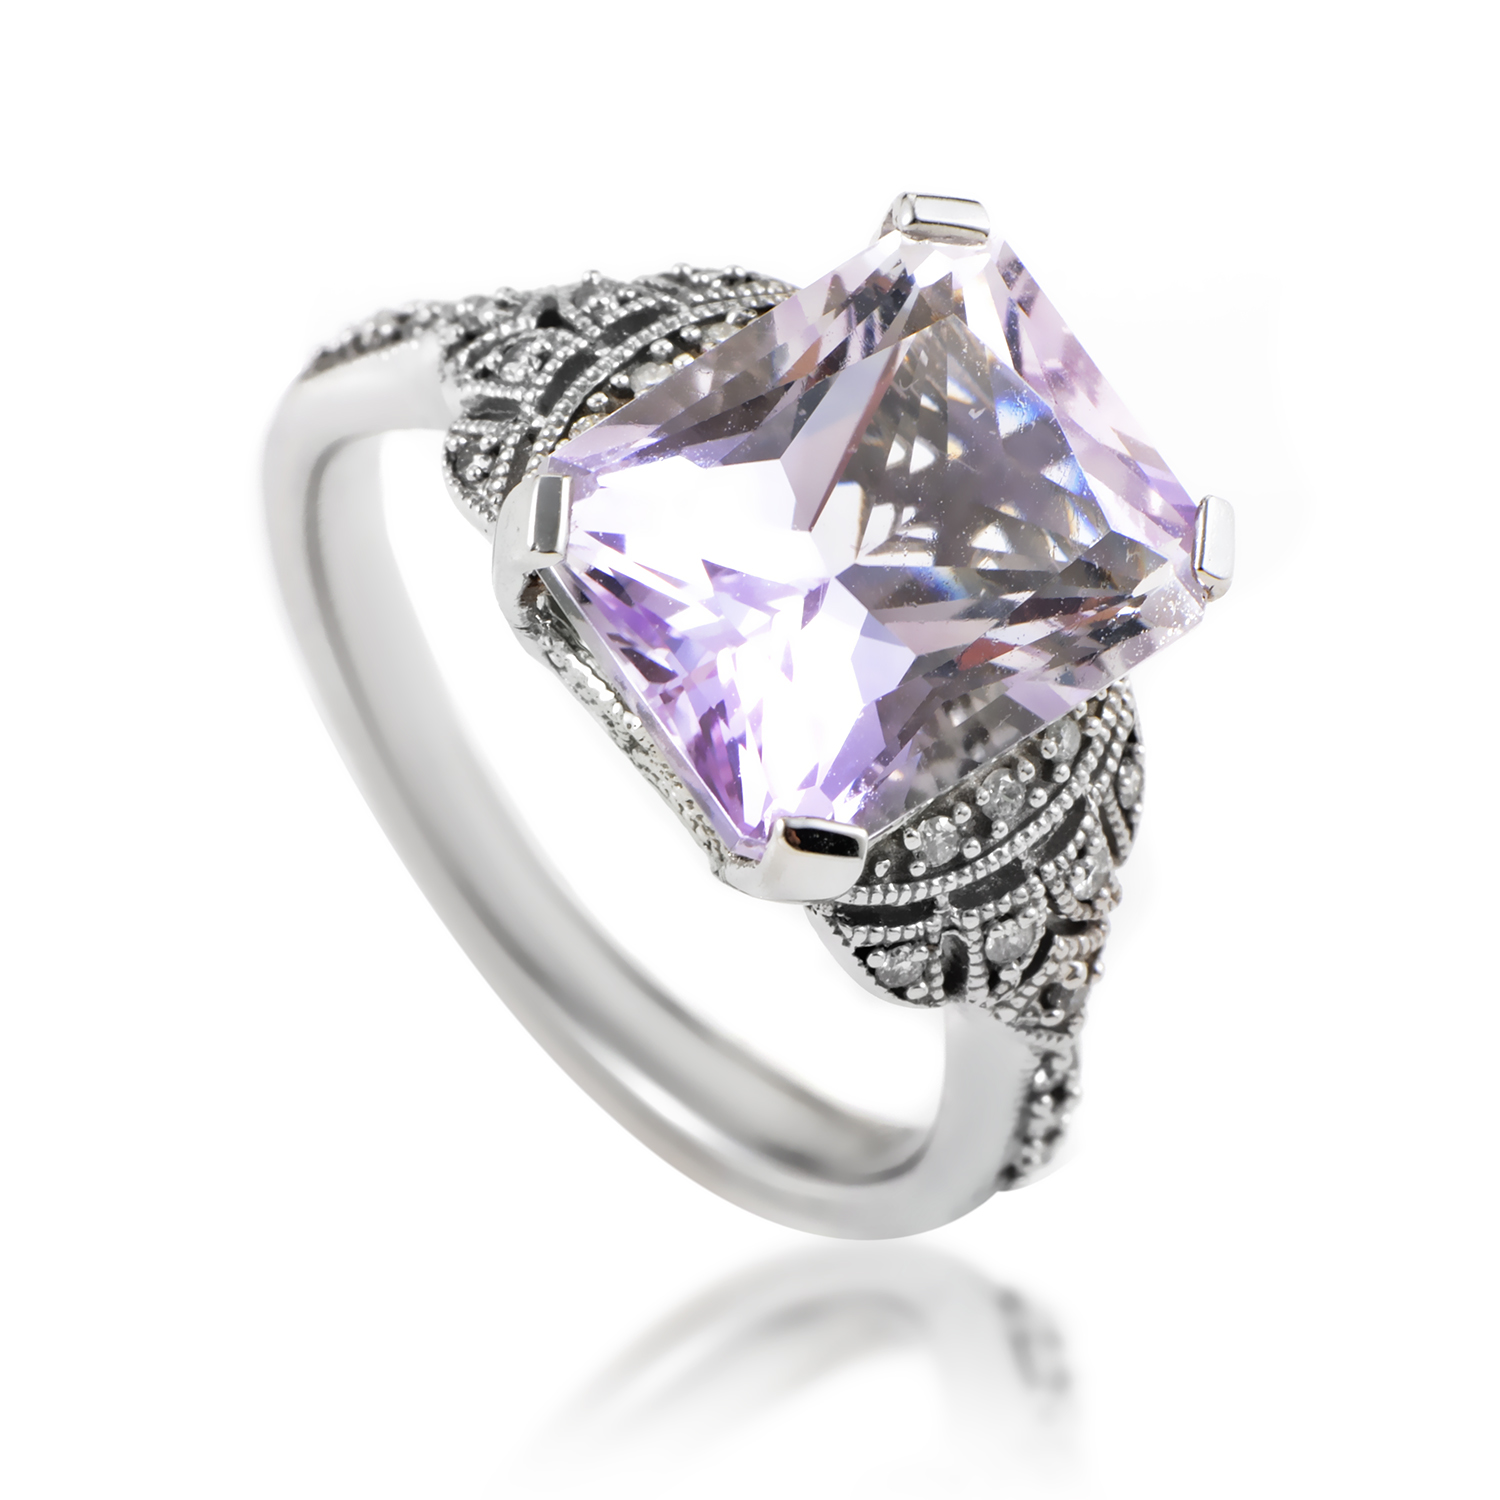 Women's 14K White Gold Diamond & Amethyst Ring RC4-10504WAM